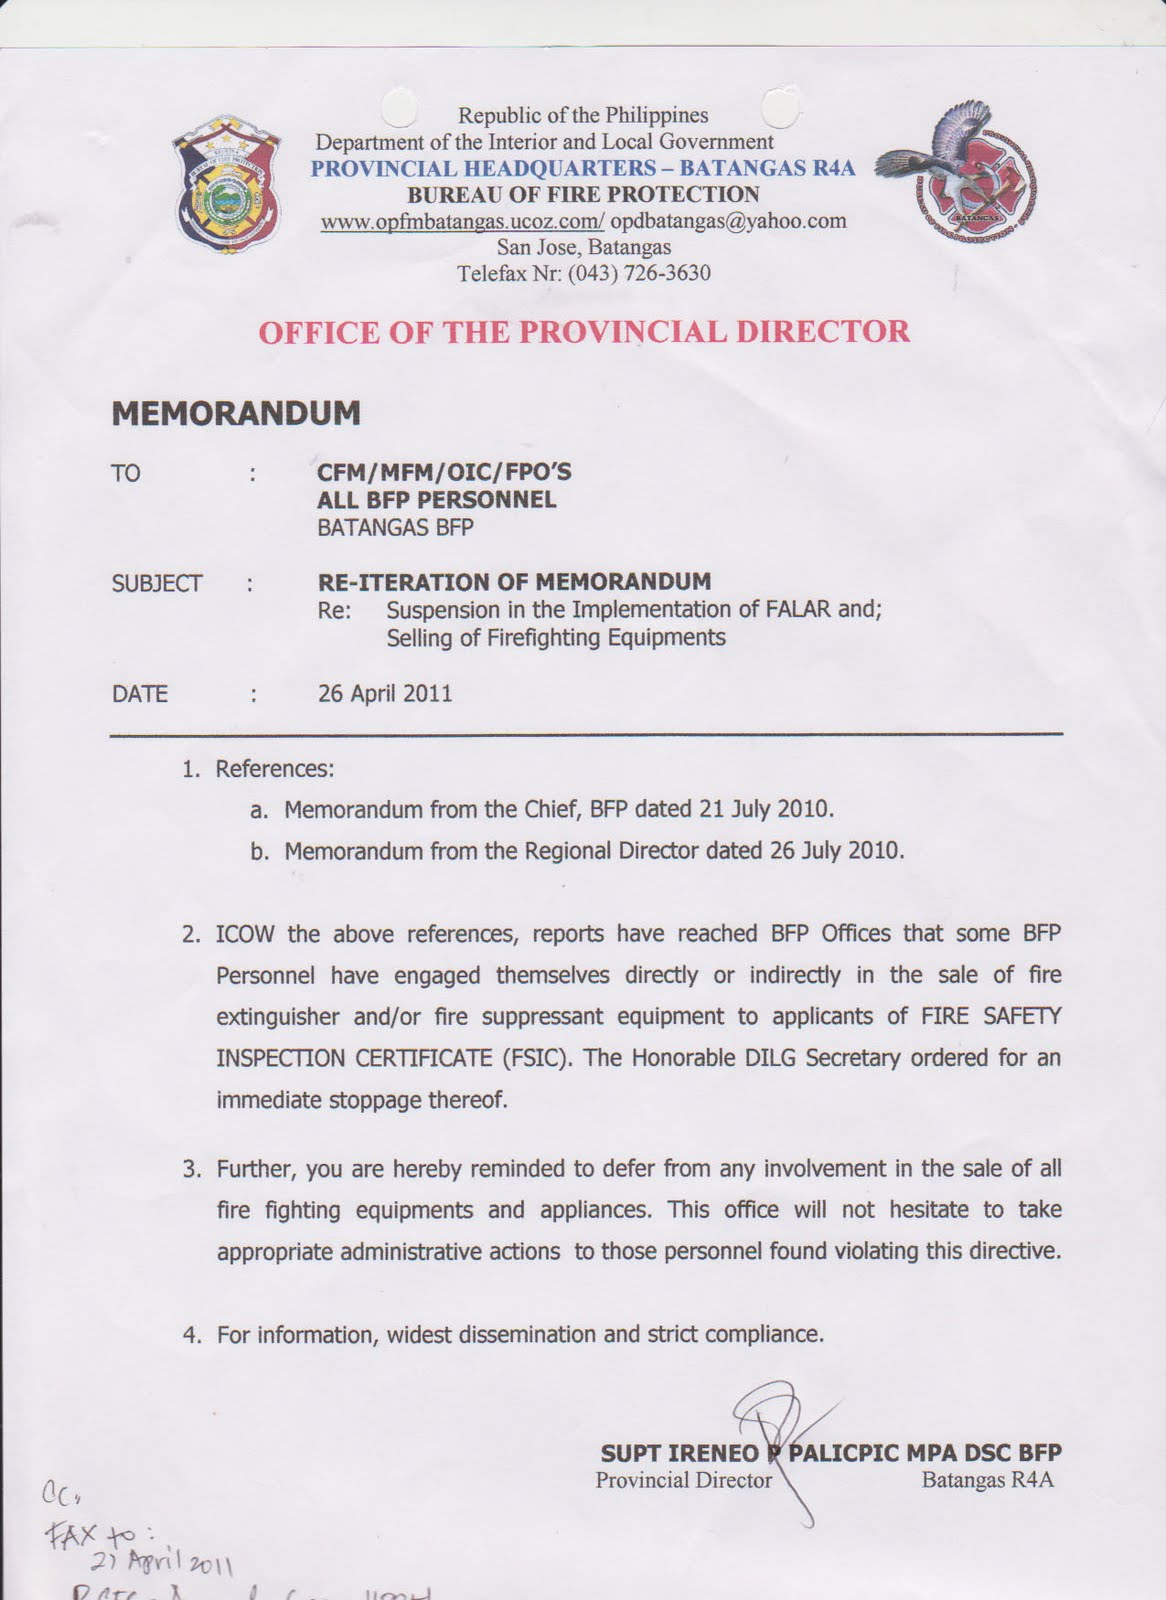 fire alarm installation certificate template - opd batangas archives april 2011